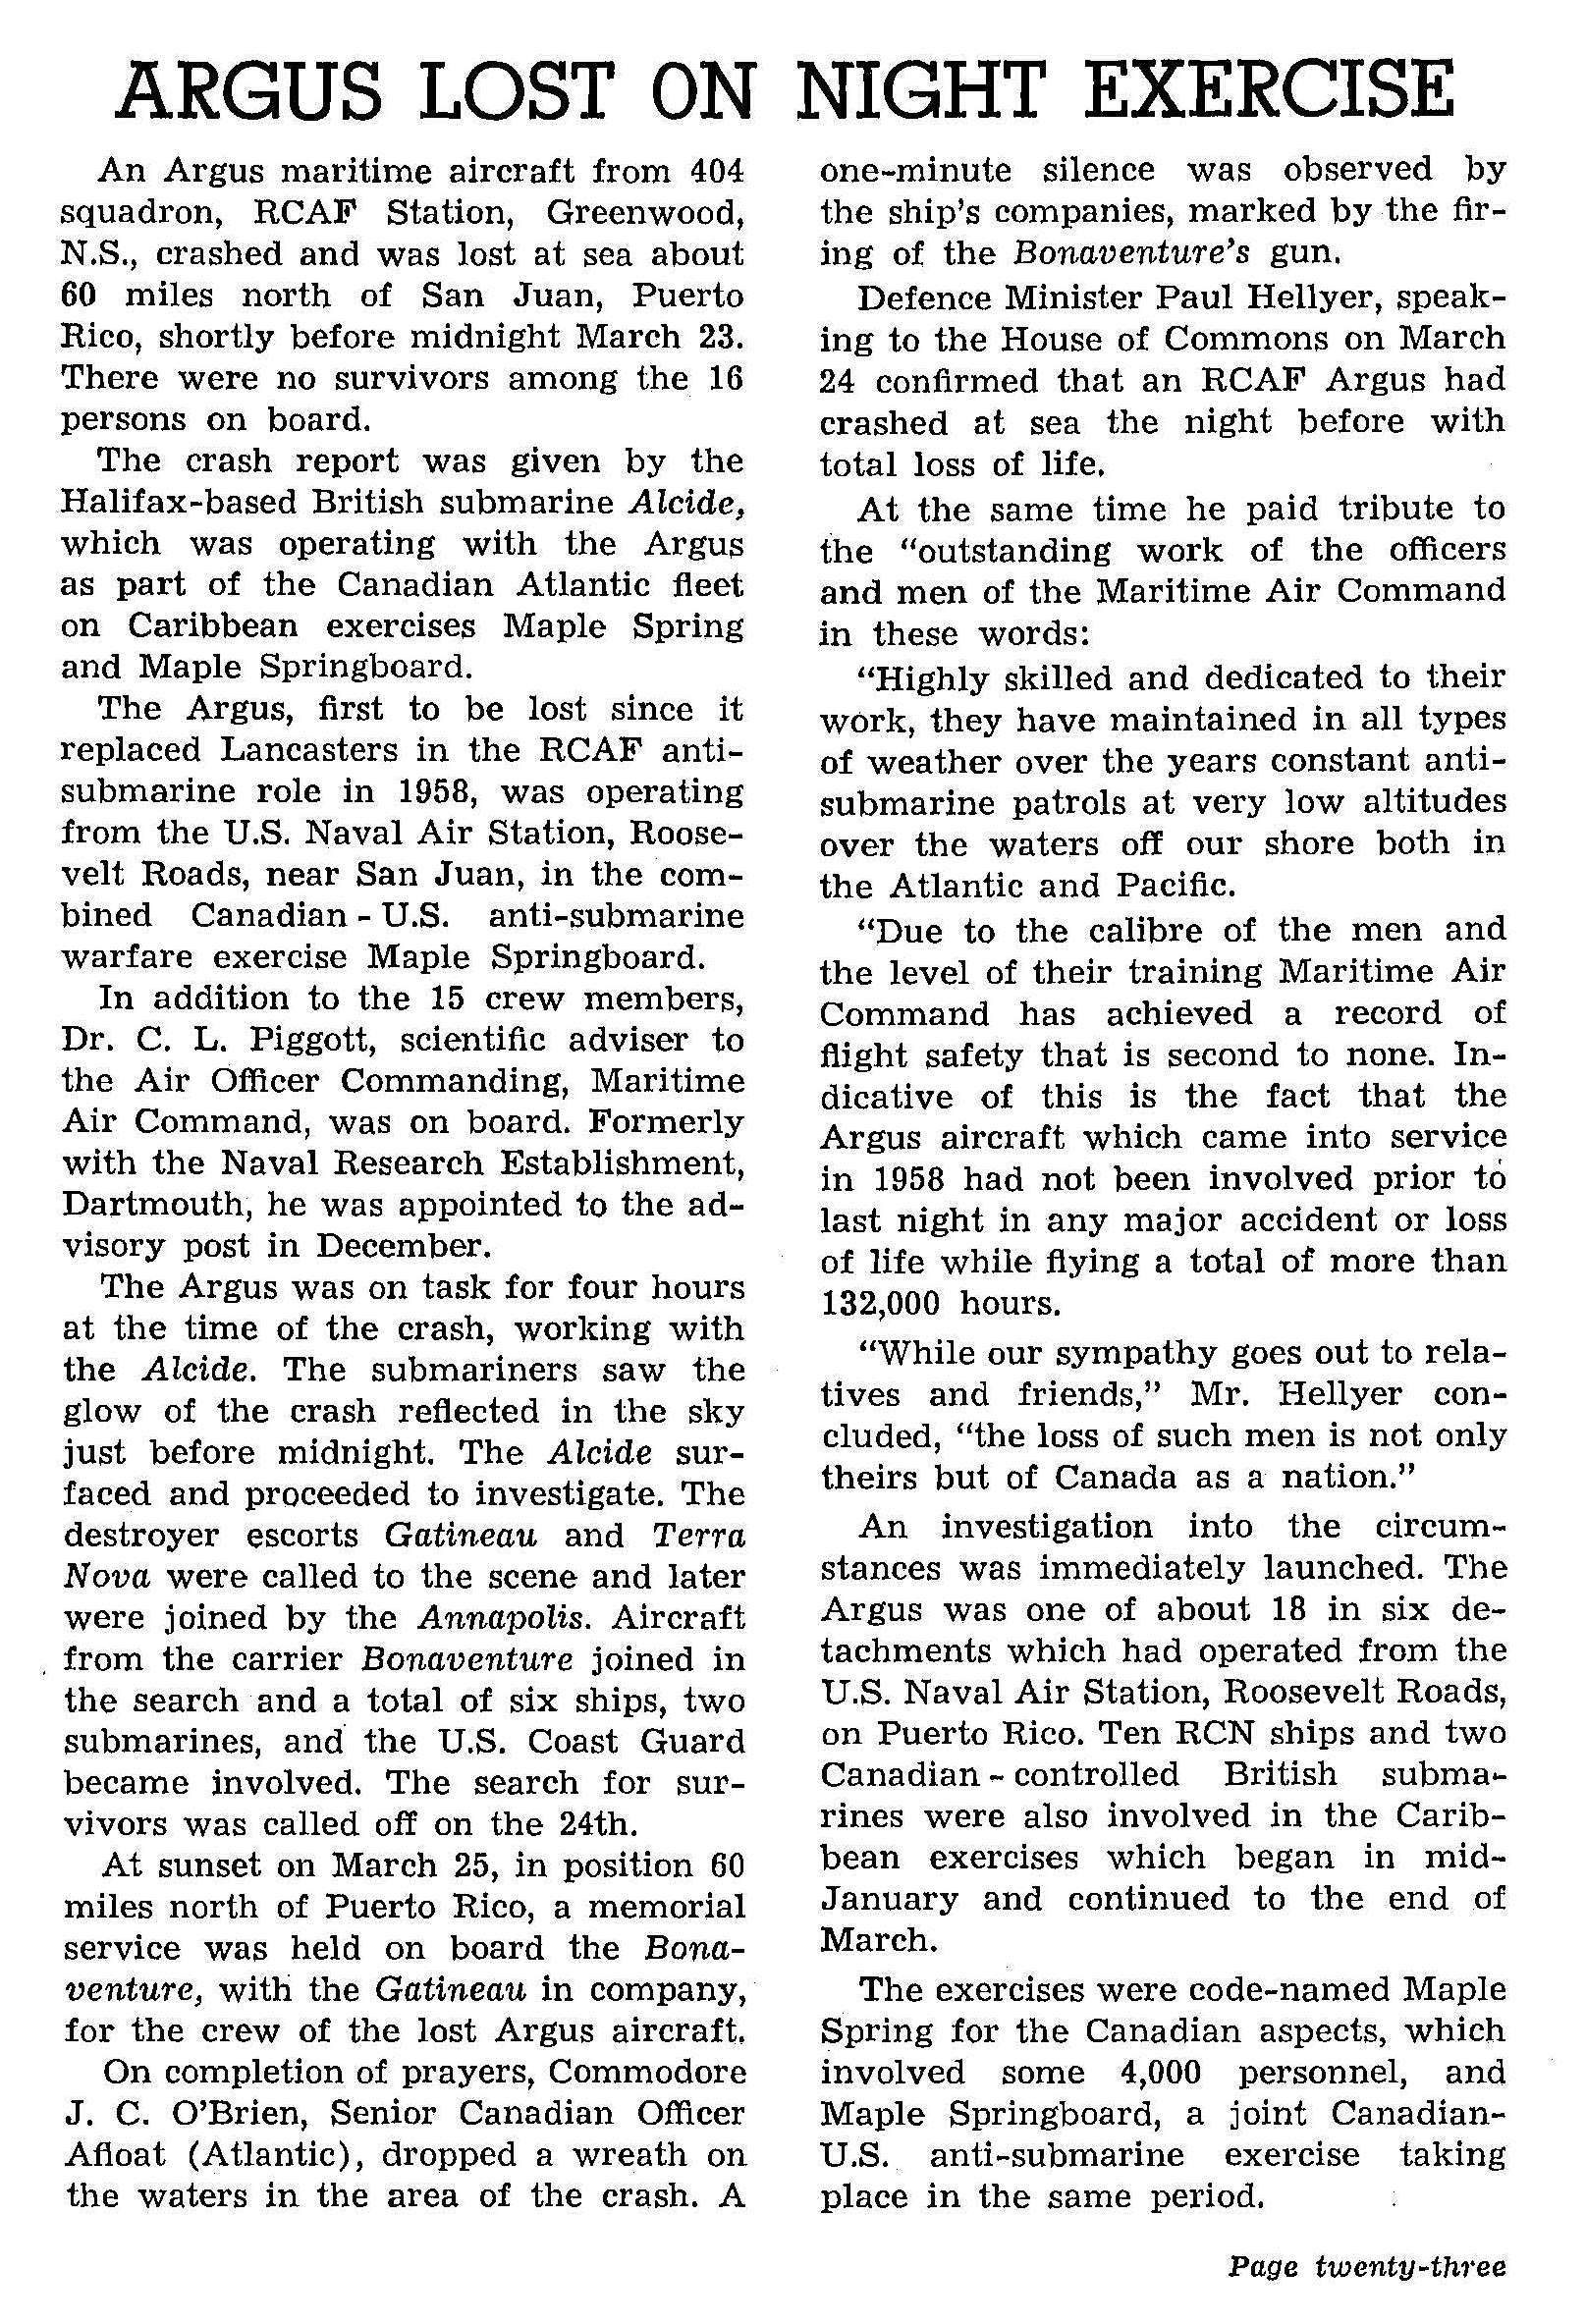 Document– This news report about the loss of Argus aircraft #20727, on May 23, 1965, appeared at page 23 of the March-April 1965 issue of Crowsnest, the Royal Canadian Navy's magazine.  (Submitted by Navy League Cadet Corps CHAMBLY, Barrie, Ontario.)